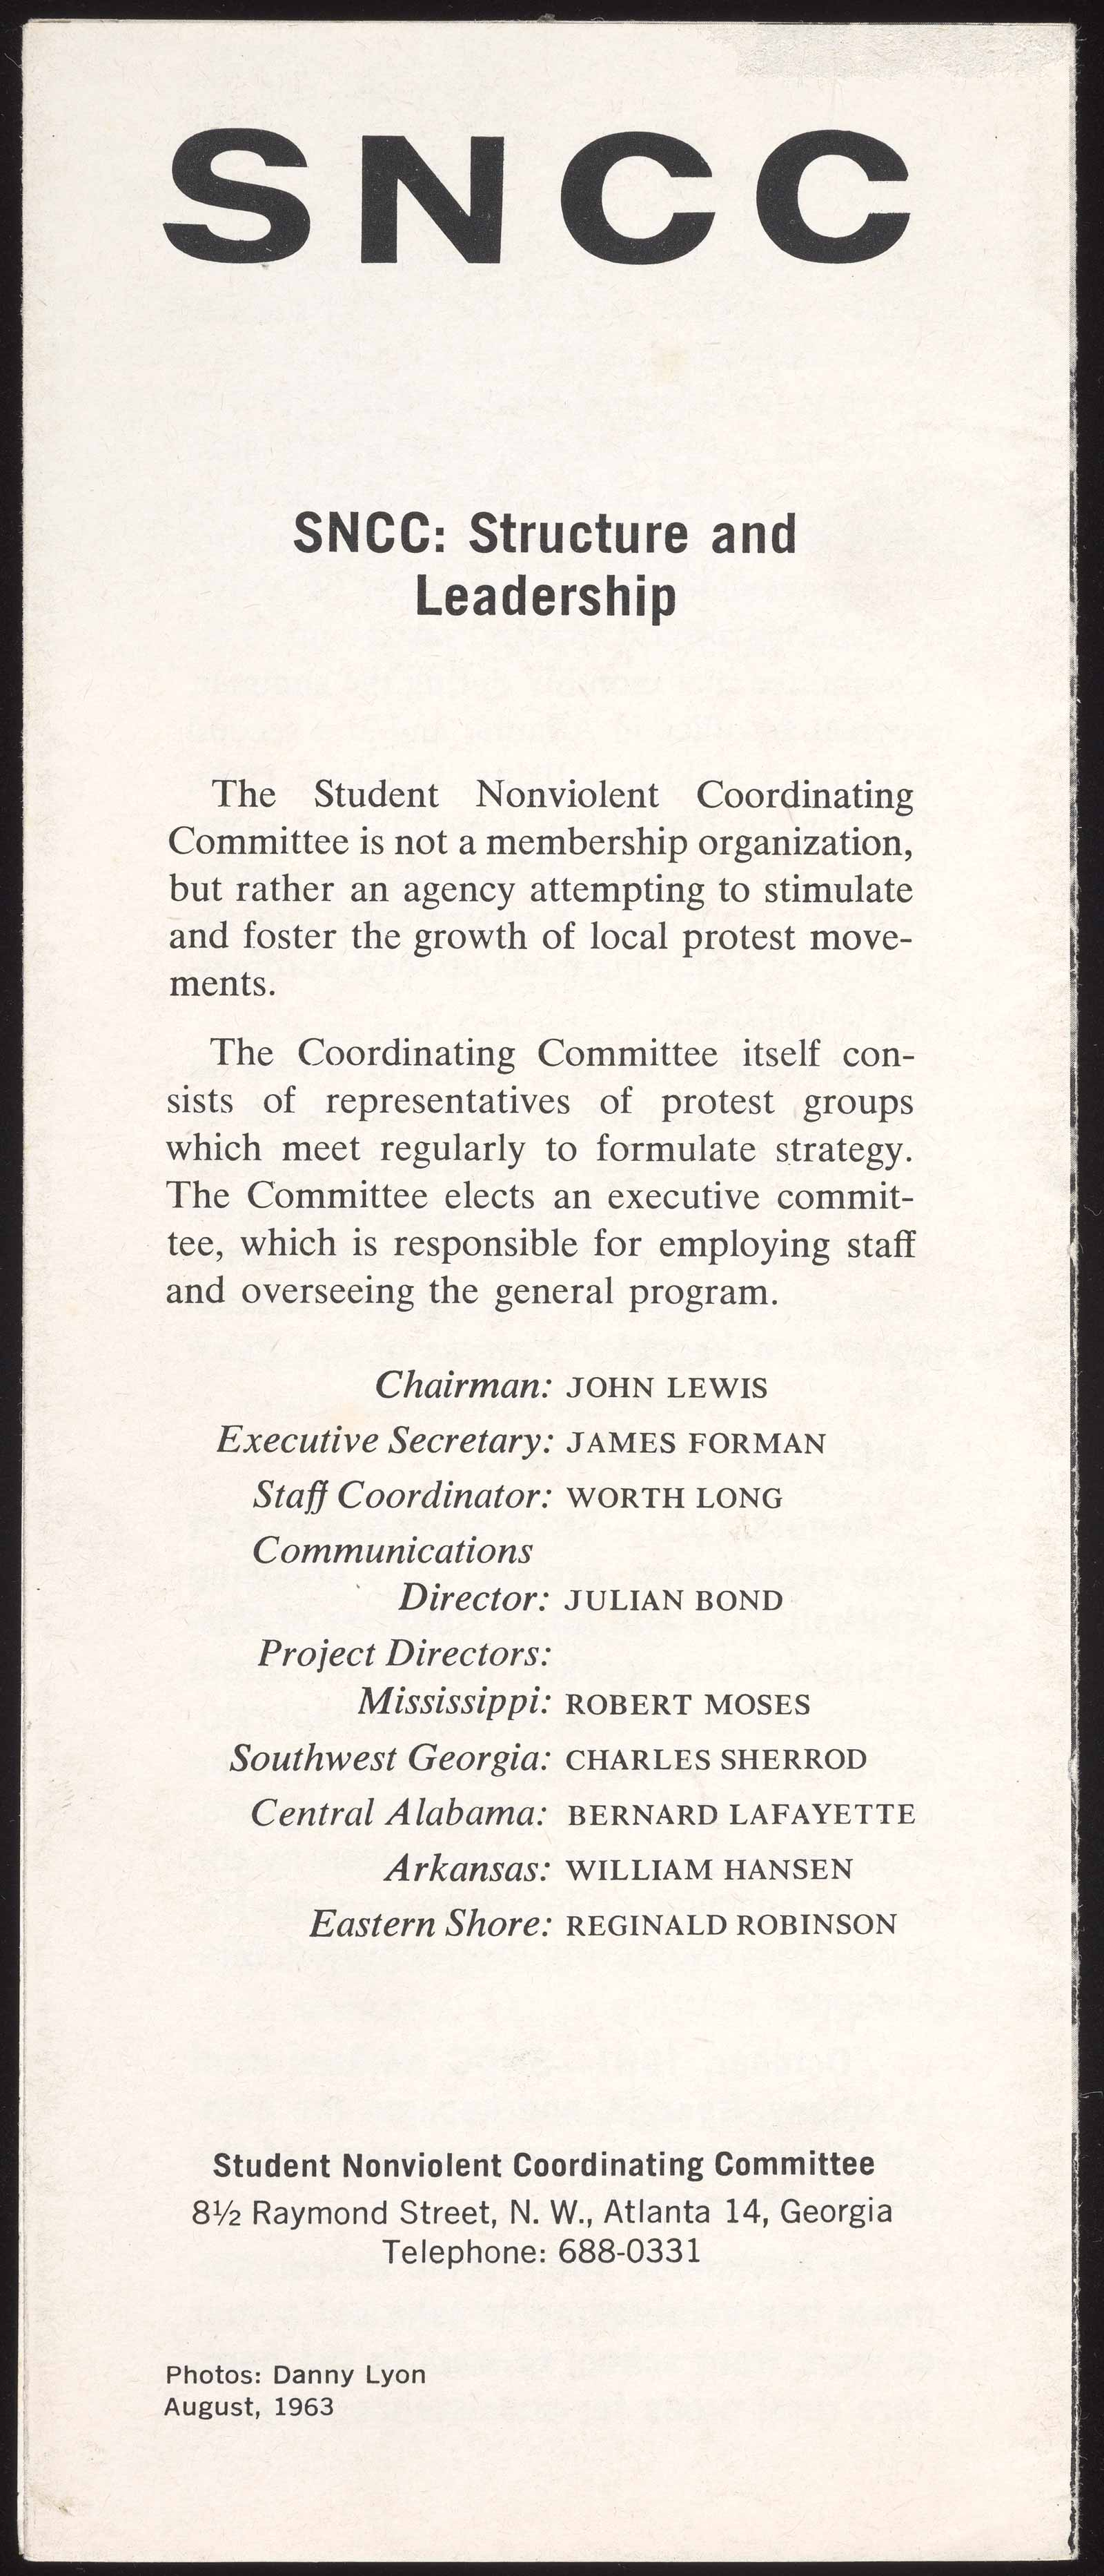 The Fine Arts Museums of San Francisco Verso of the Mississippi Summer brochure, listing the SNCC staff of 1963